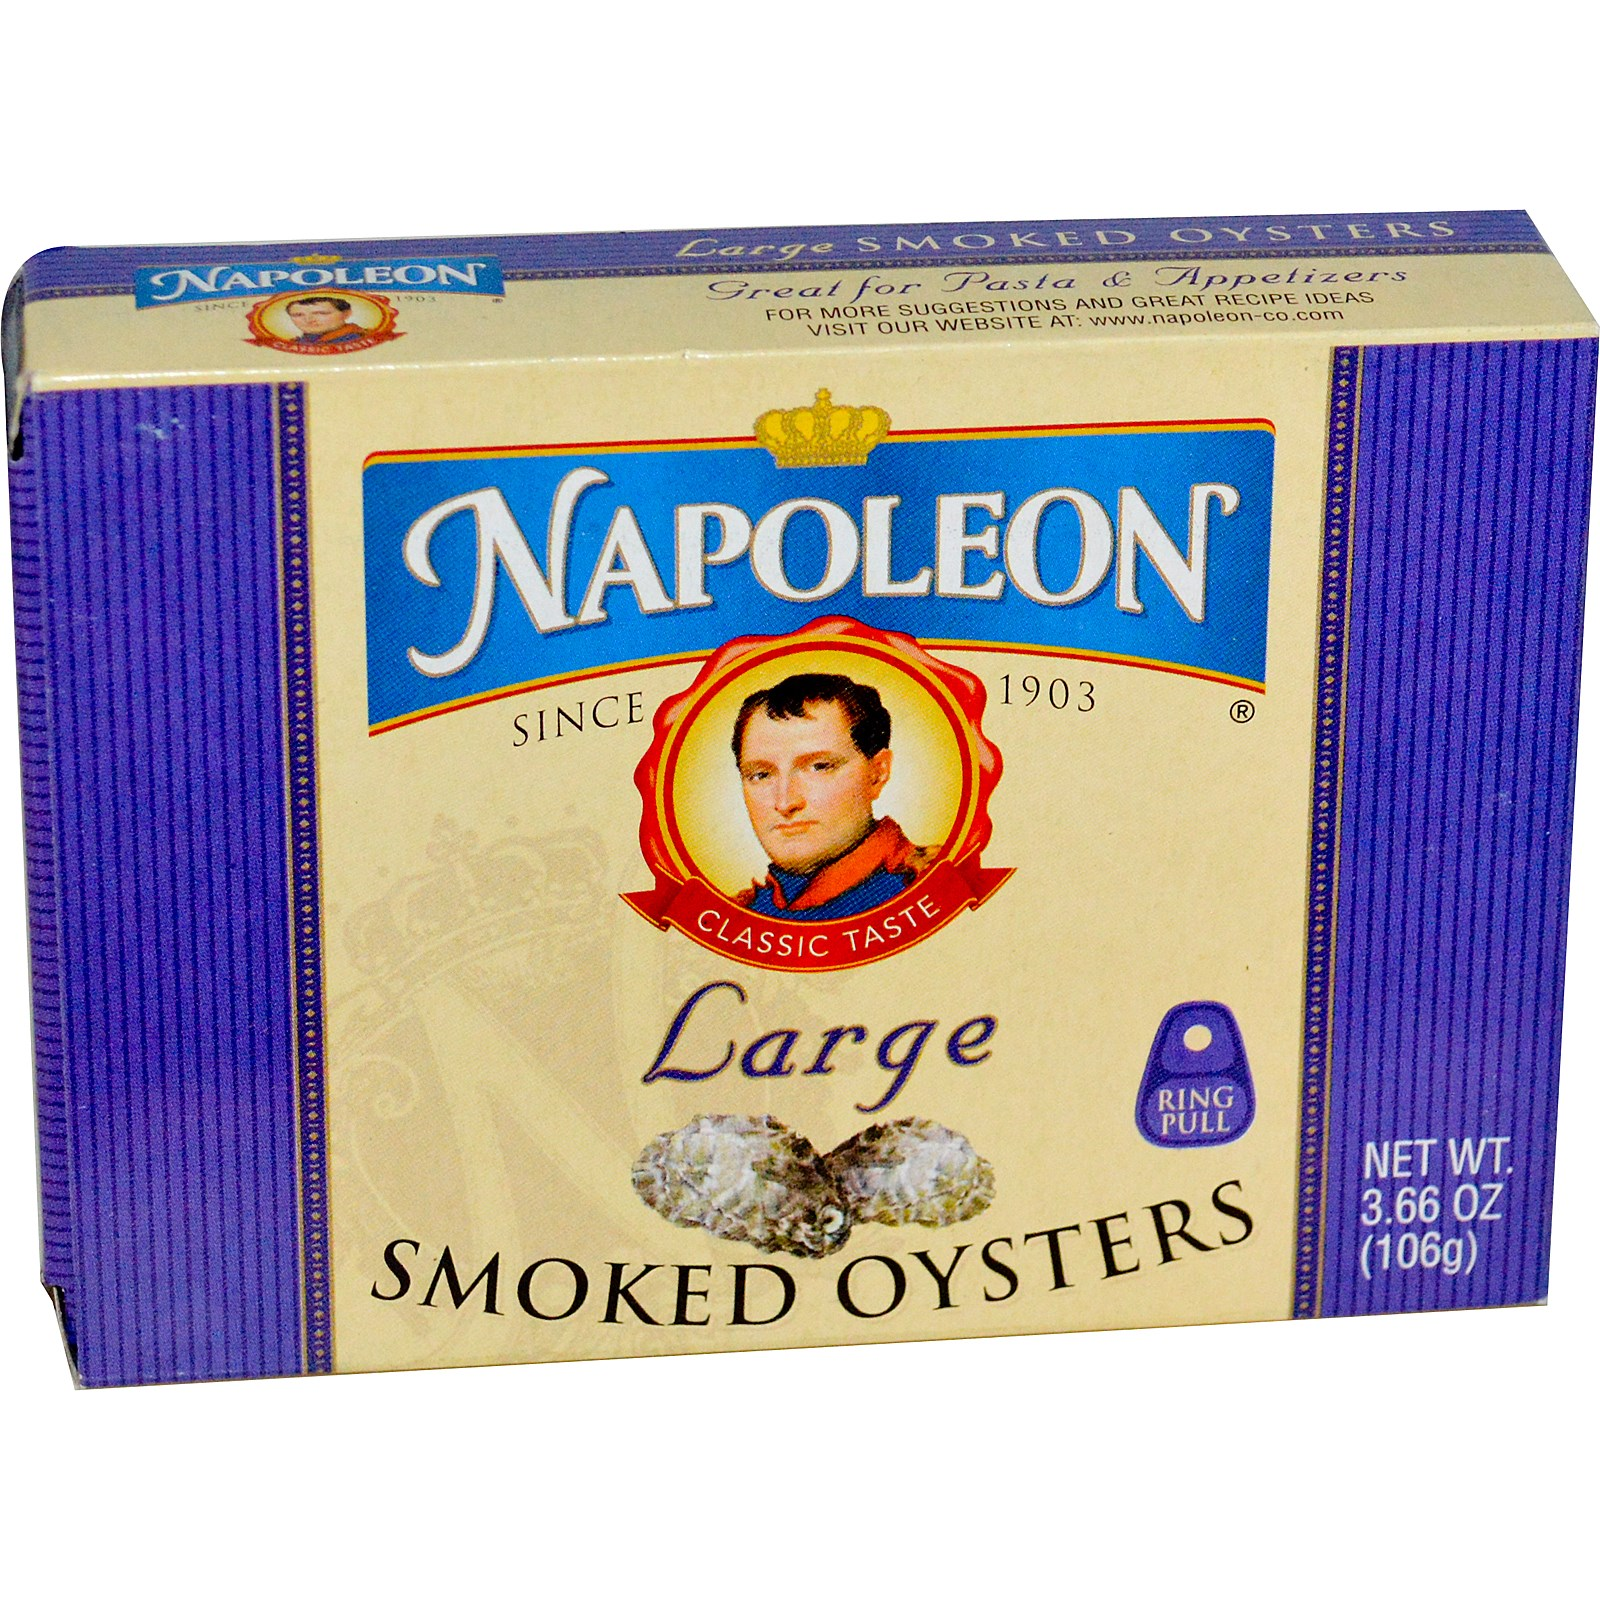 Napoleon Co., Large Smoked Oysters, 3.66 oz (pack of 12) by